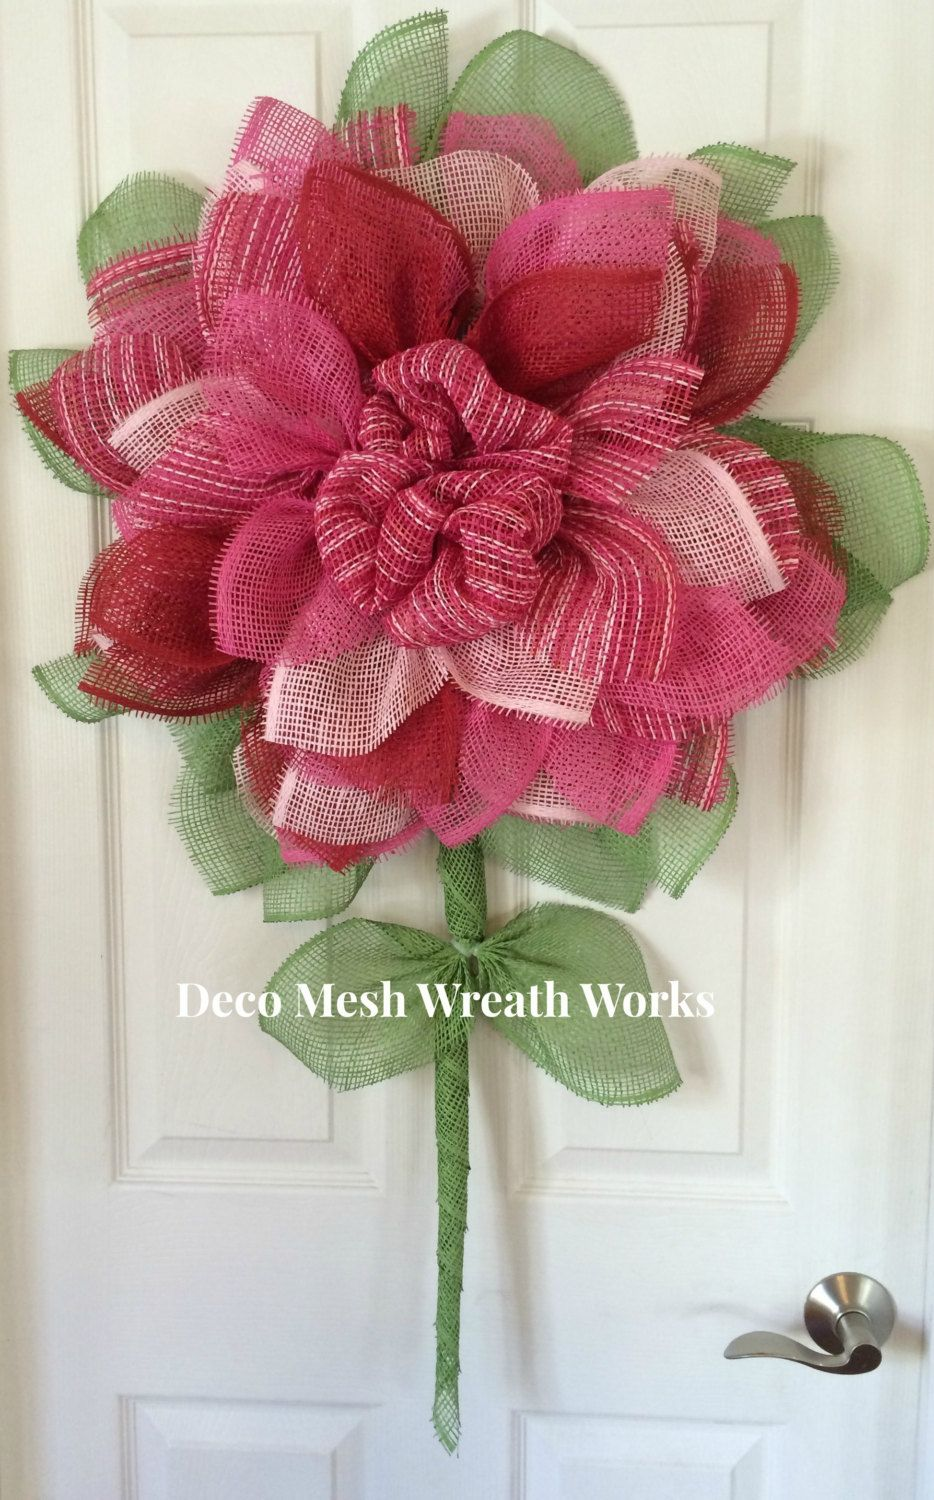 Crafts with deco mesh - Paper Mesh Flower Wreath Deco Mesh Flower Wreath Popular Sunflower Wreath Flower Wreath